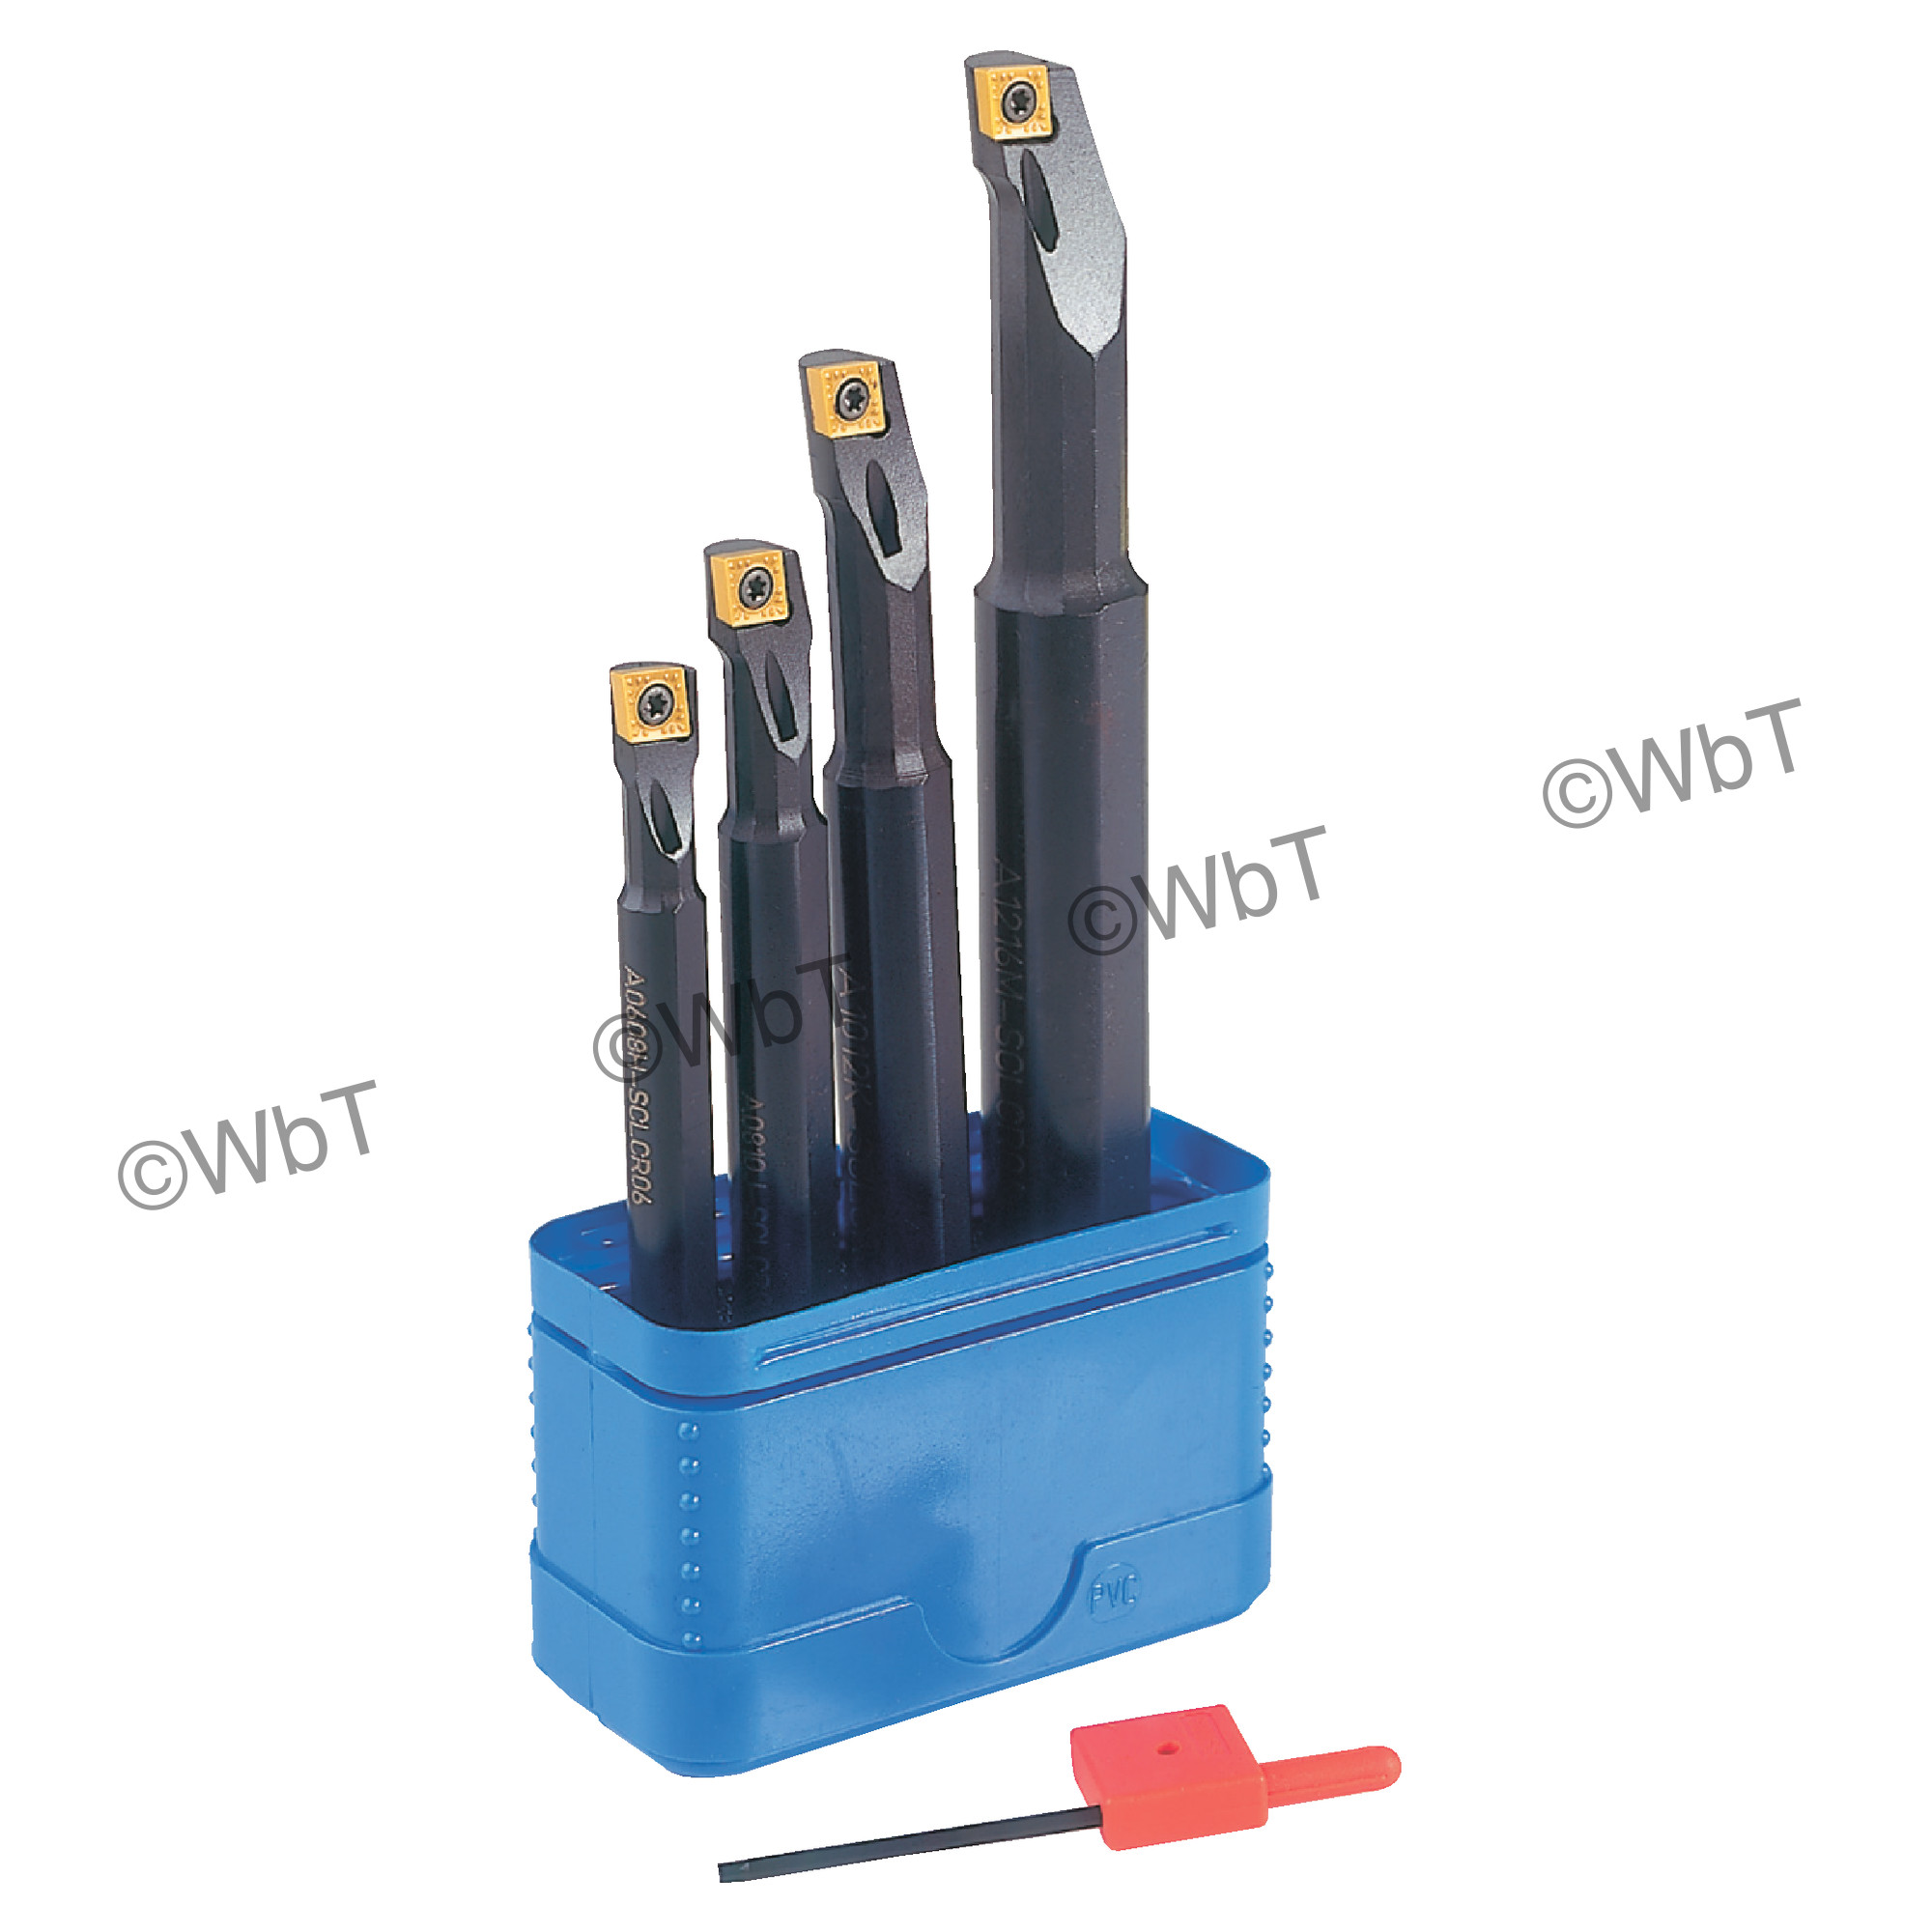 """T&O - A-SCLCR-2 SET-A Steel / Boring Bar Set (5/16"""", 3/8"""", 1/2"""", & 5/8"""") CCMT2(1.5)_ Inserts / Right Hand"""